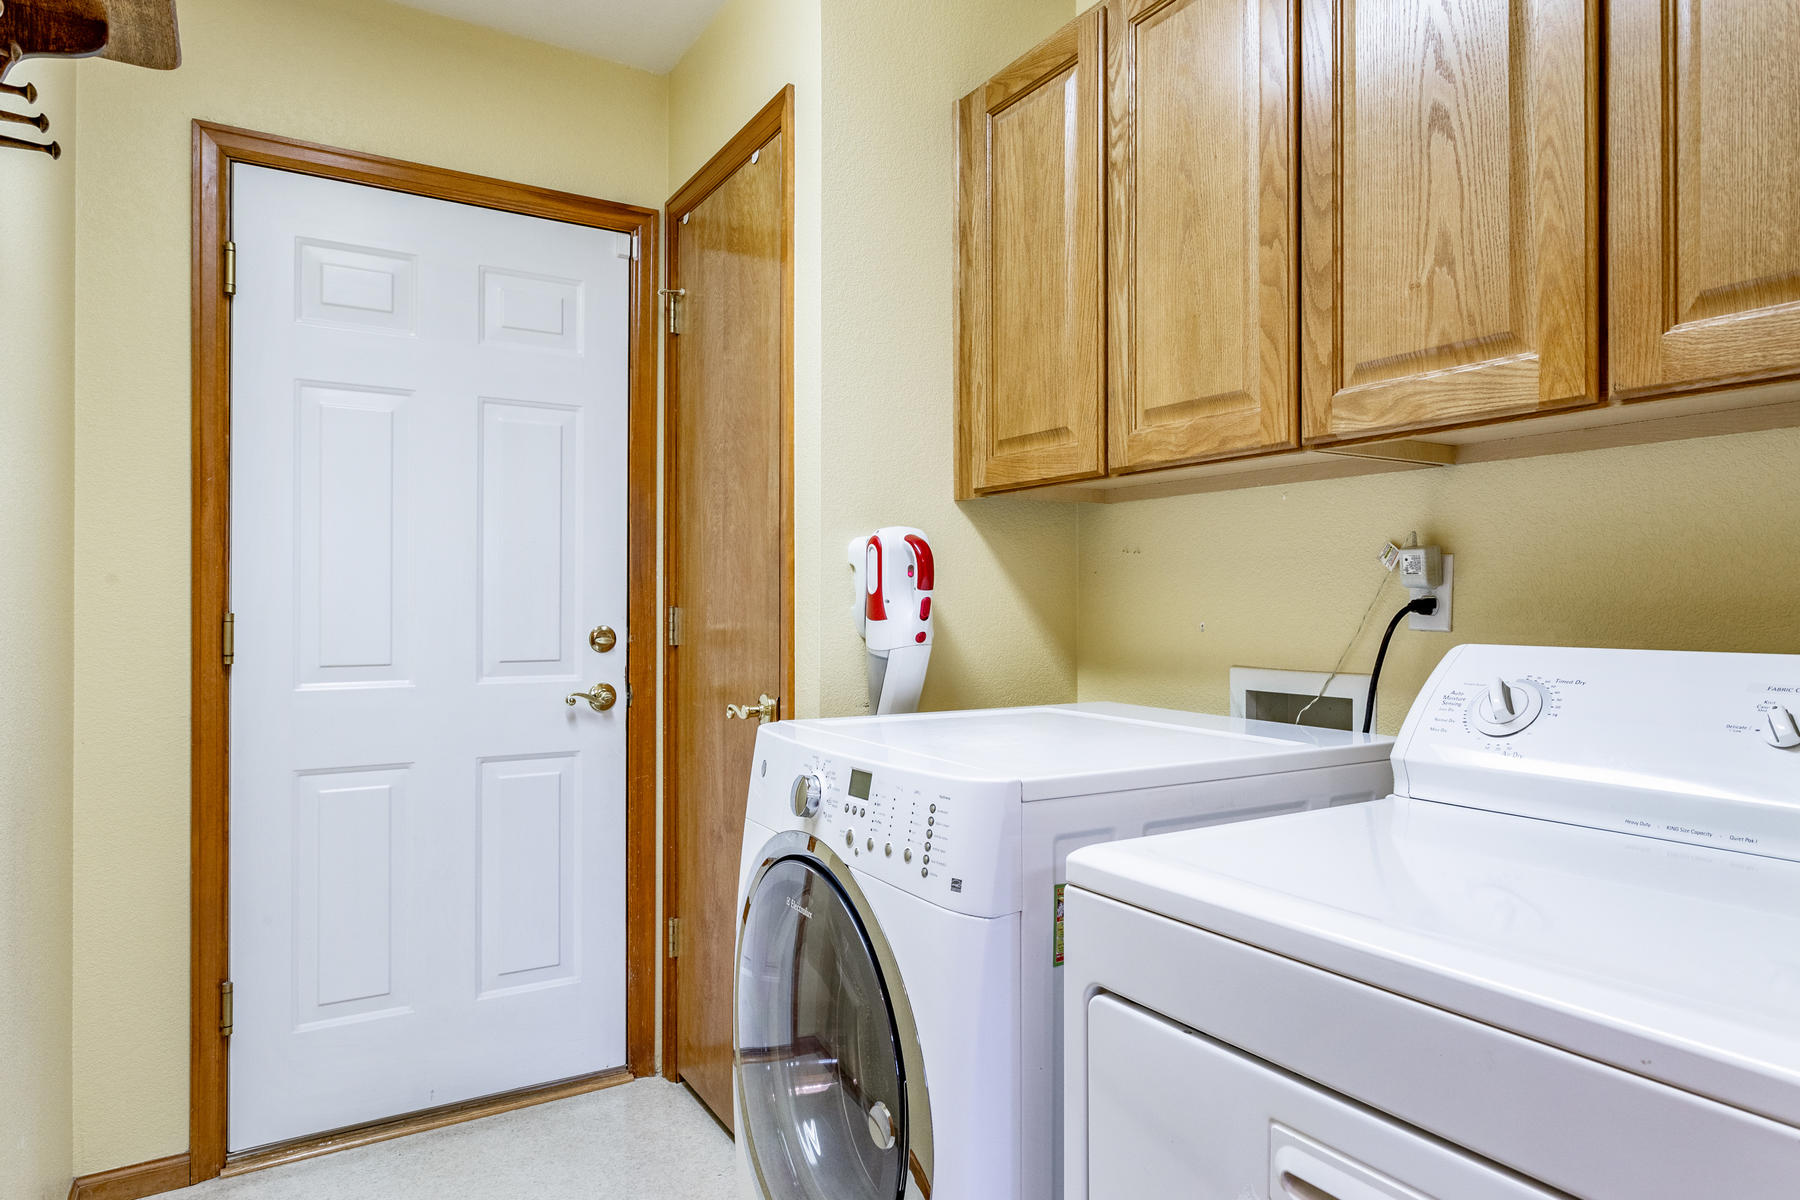 Main Floor Laundry - Washer & Dryer are Included